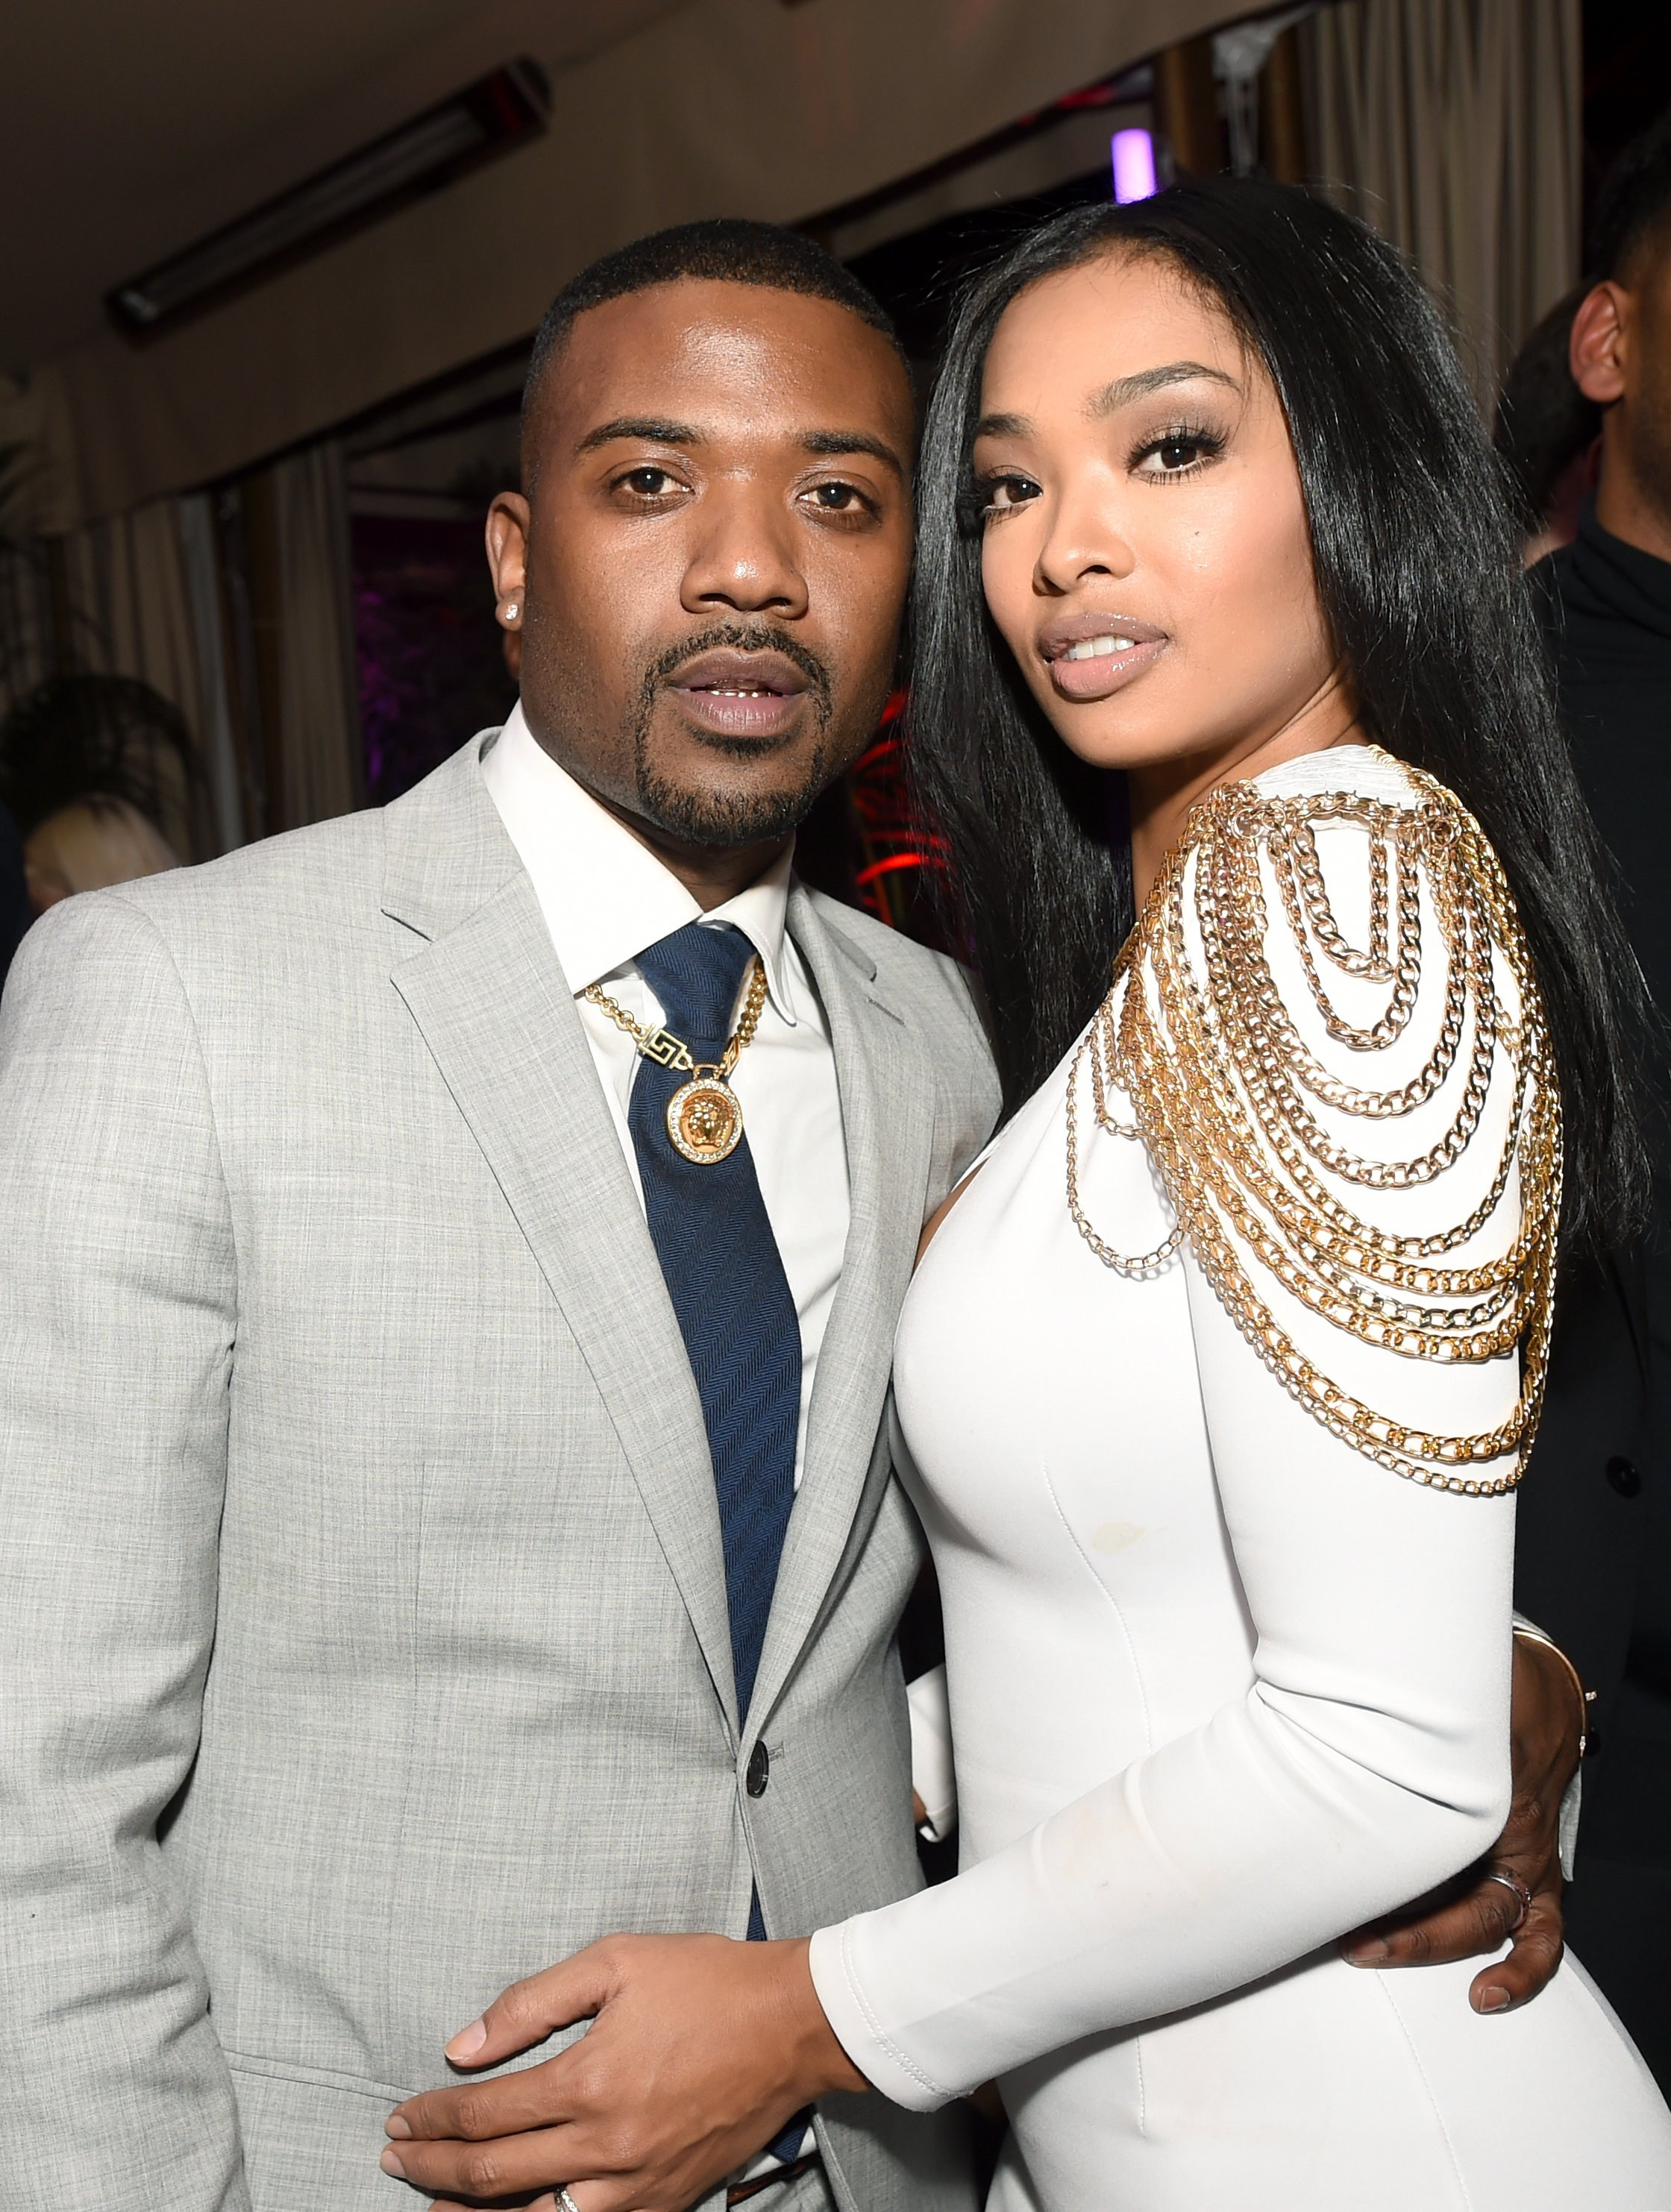 Ray J & Princess Love at Chateau Marmont on Feb. 12, 2017 in Los Angeles, California | Photo: Getty Images